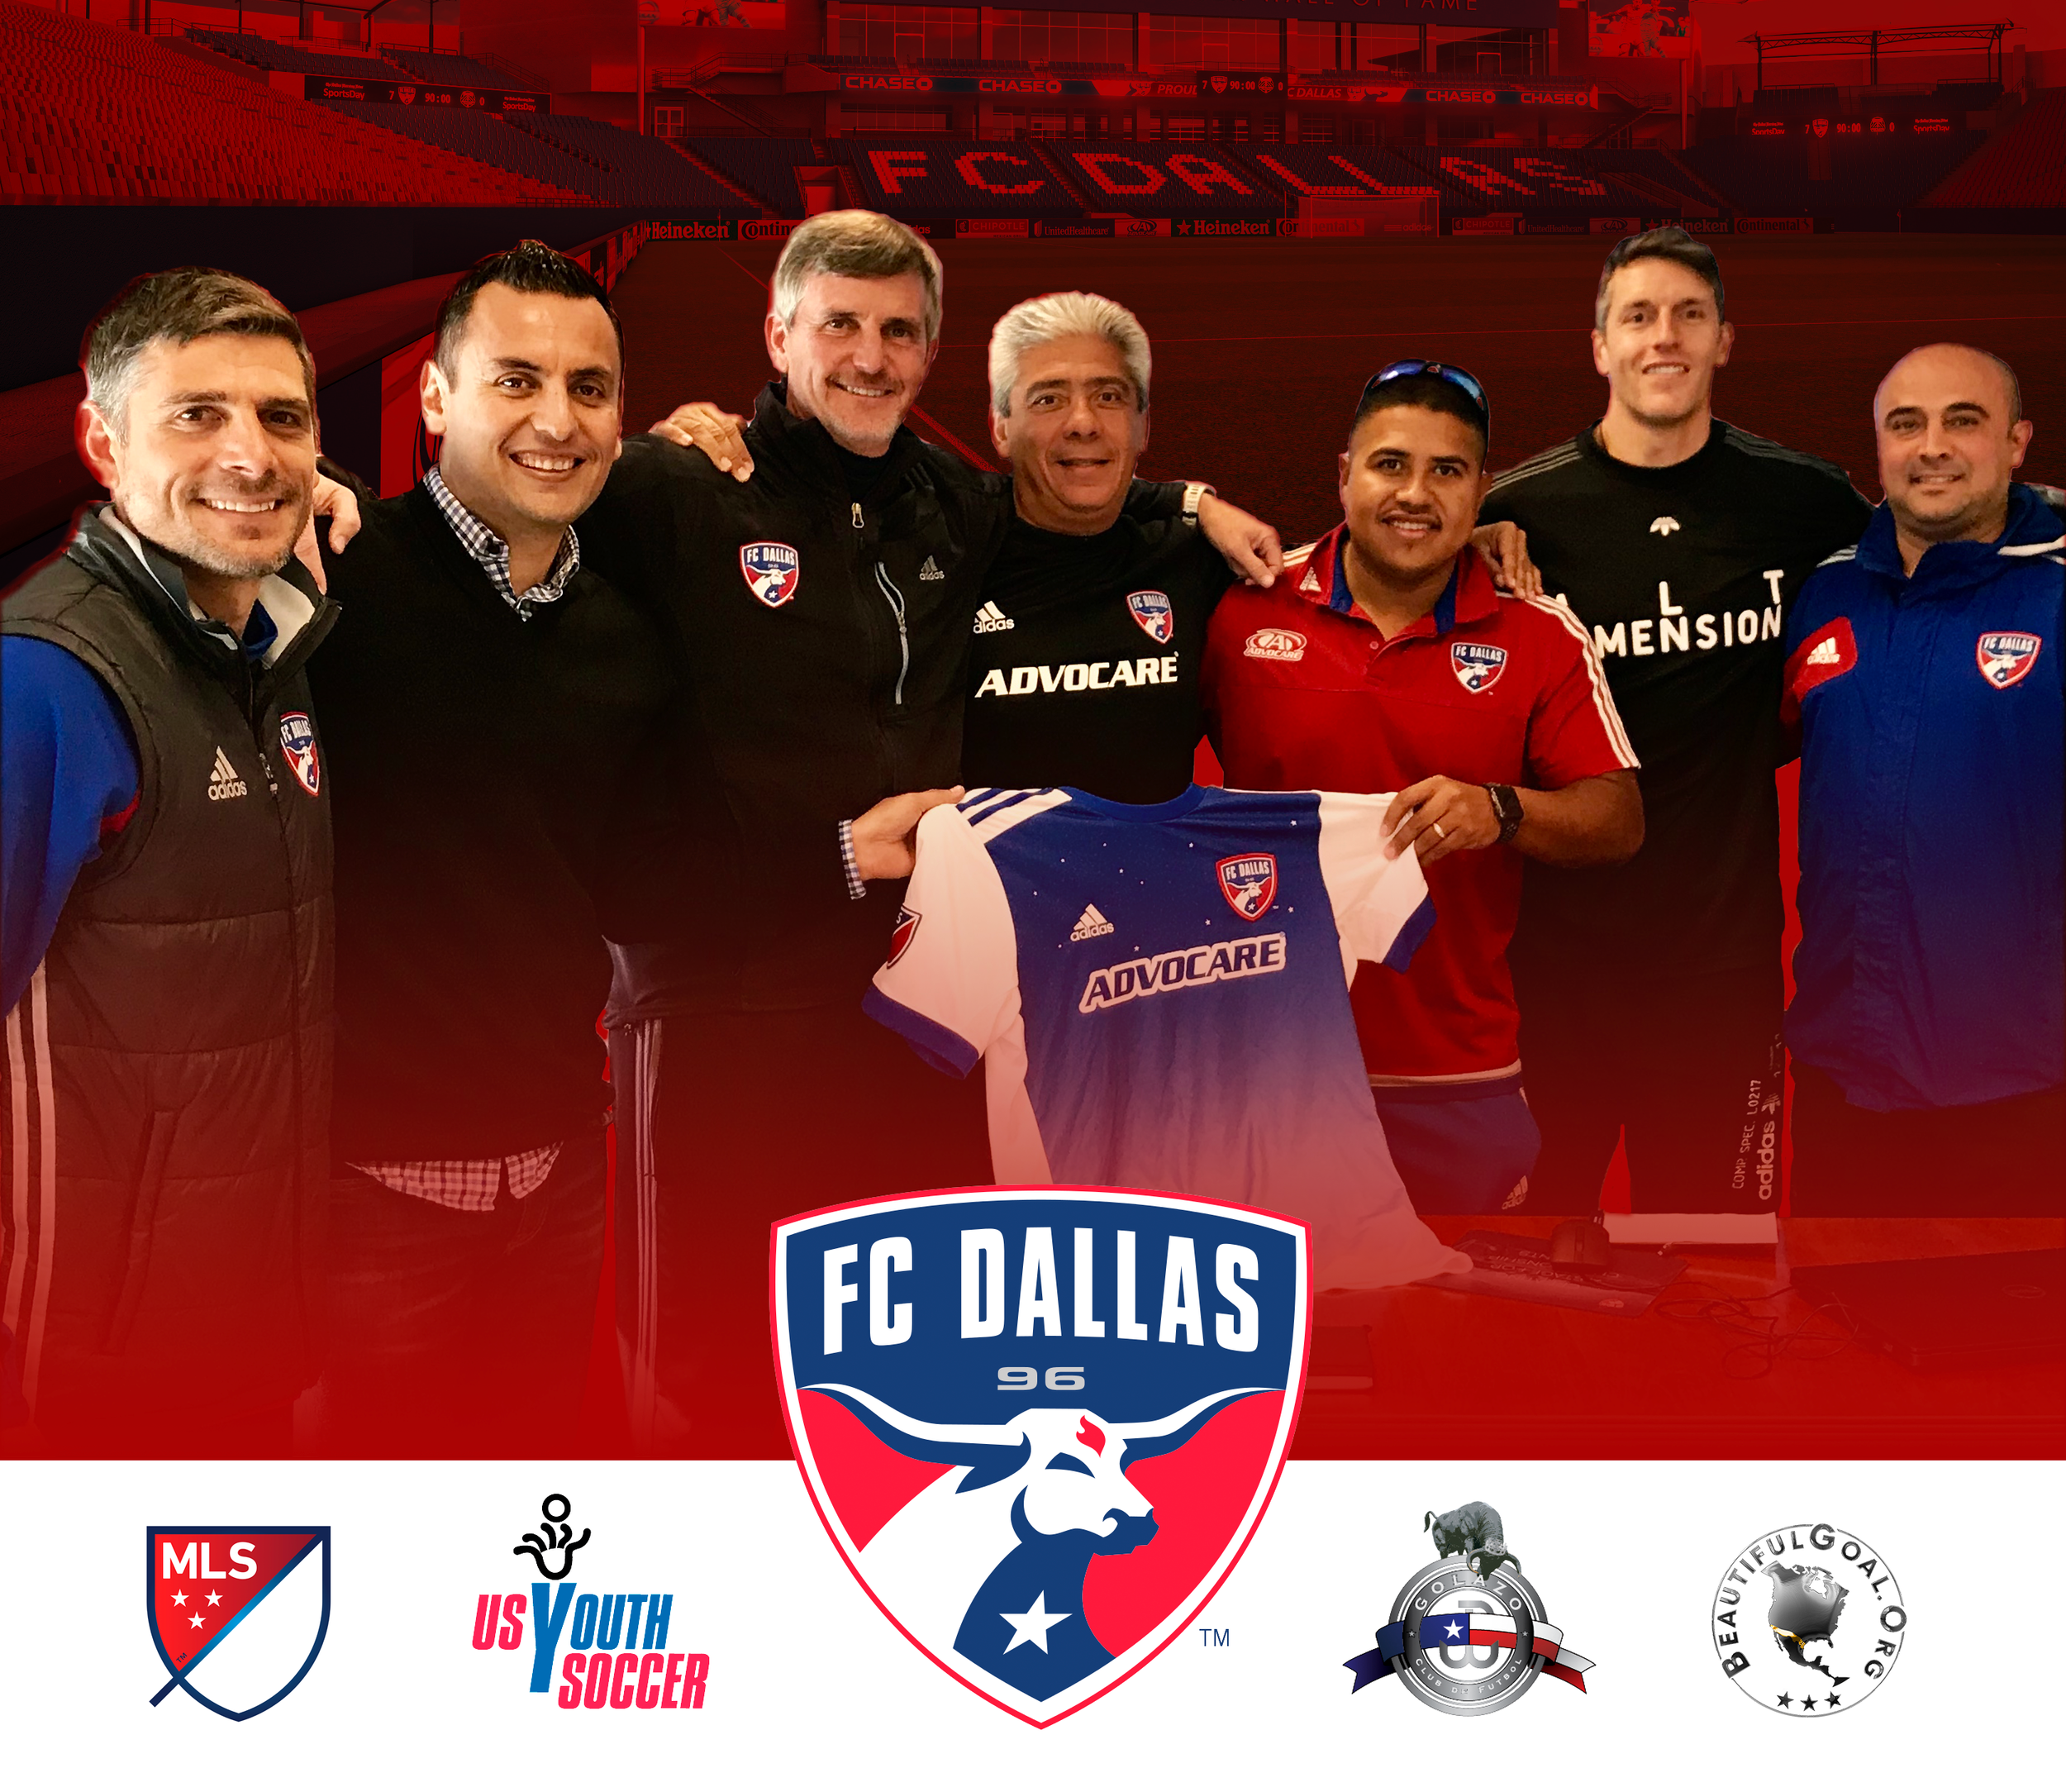 FCDallasFacebookPost.png